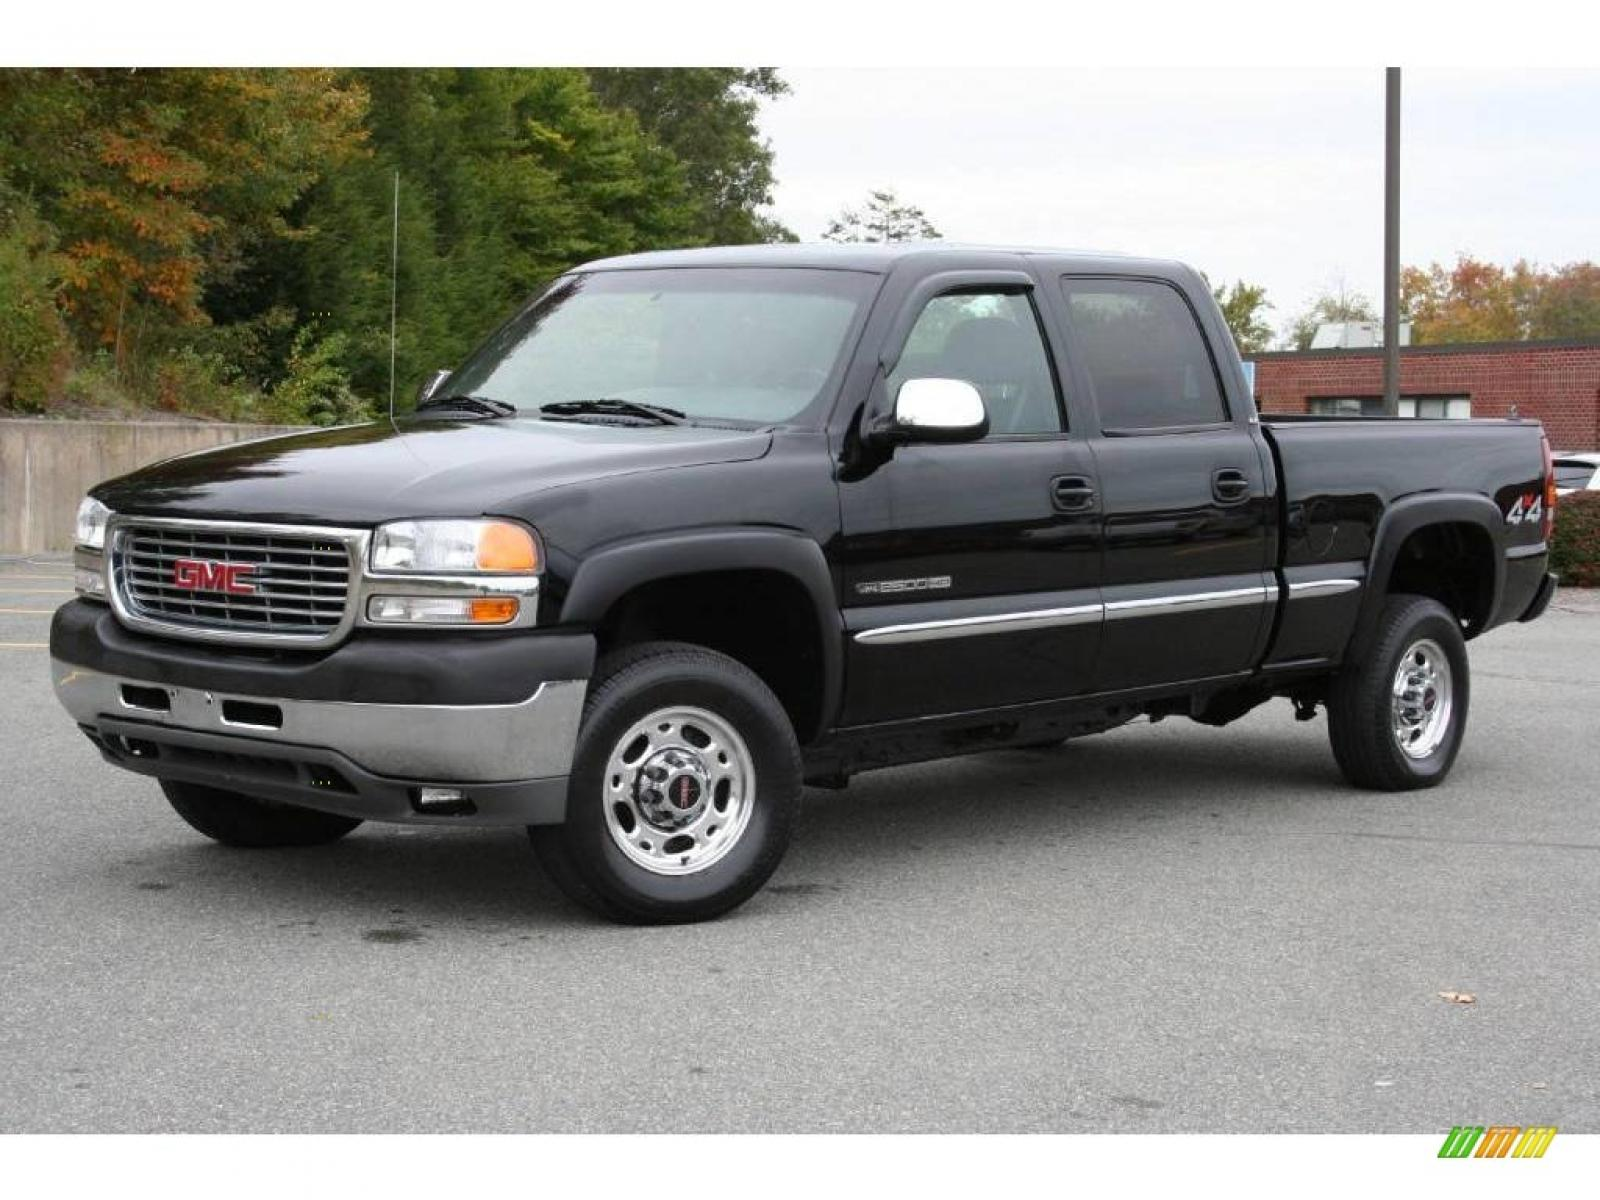 2001 gmc sierra 2500hd information and photos zombiedrive. Black Bedroom Furniture Sets. Home Design Ideas